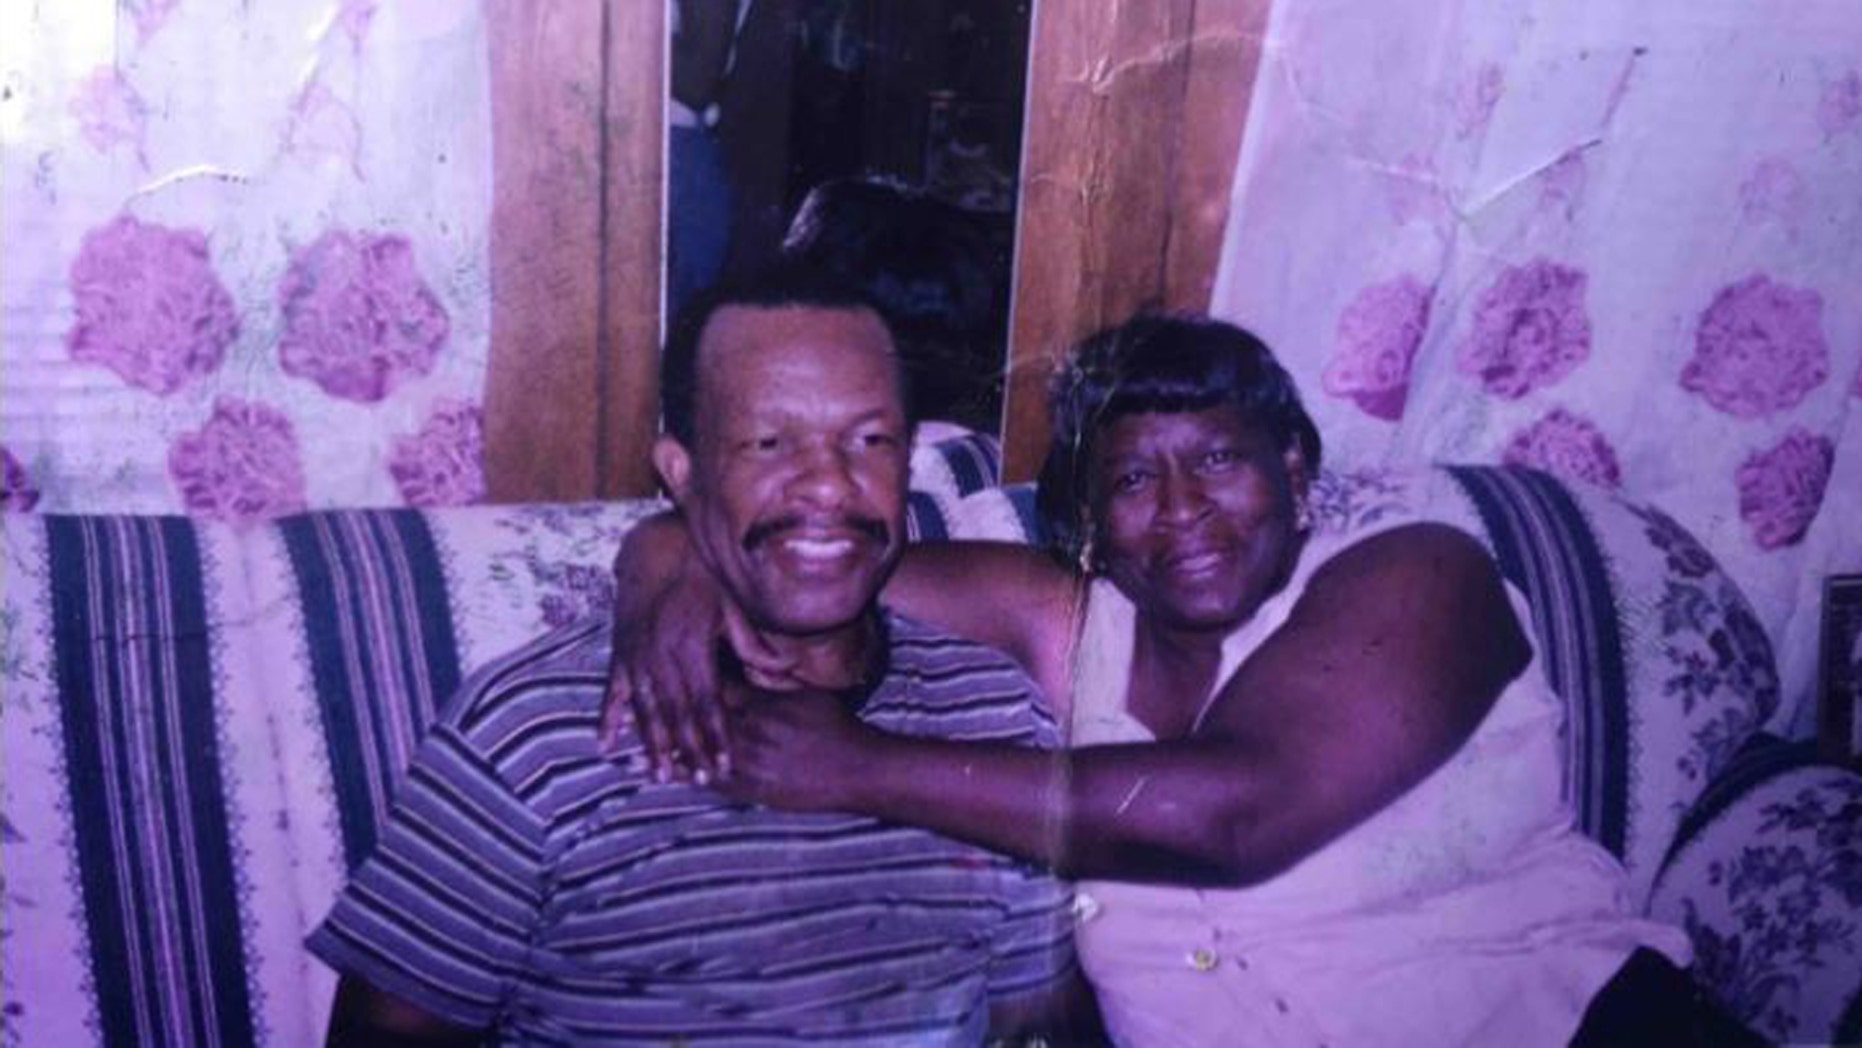 Luther Younger (L) walks miles to visit his beloved wife Waverlee in a Rochester hospital, reports said.